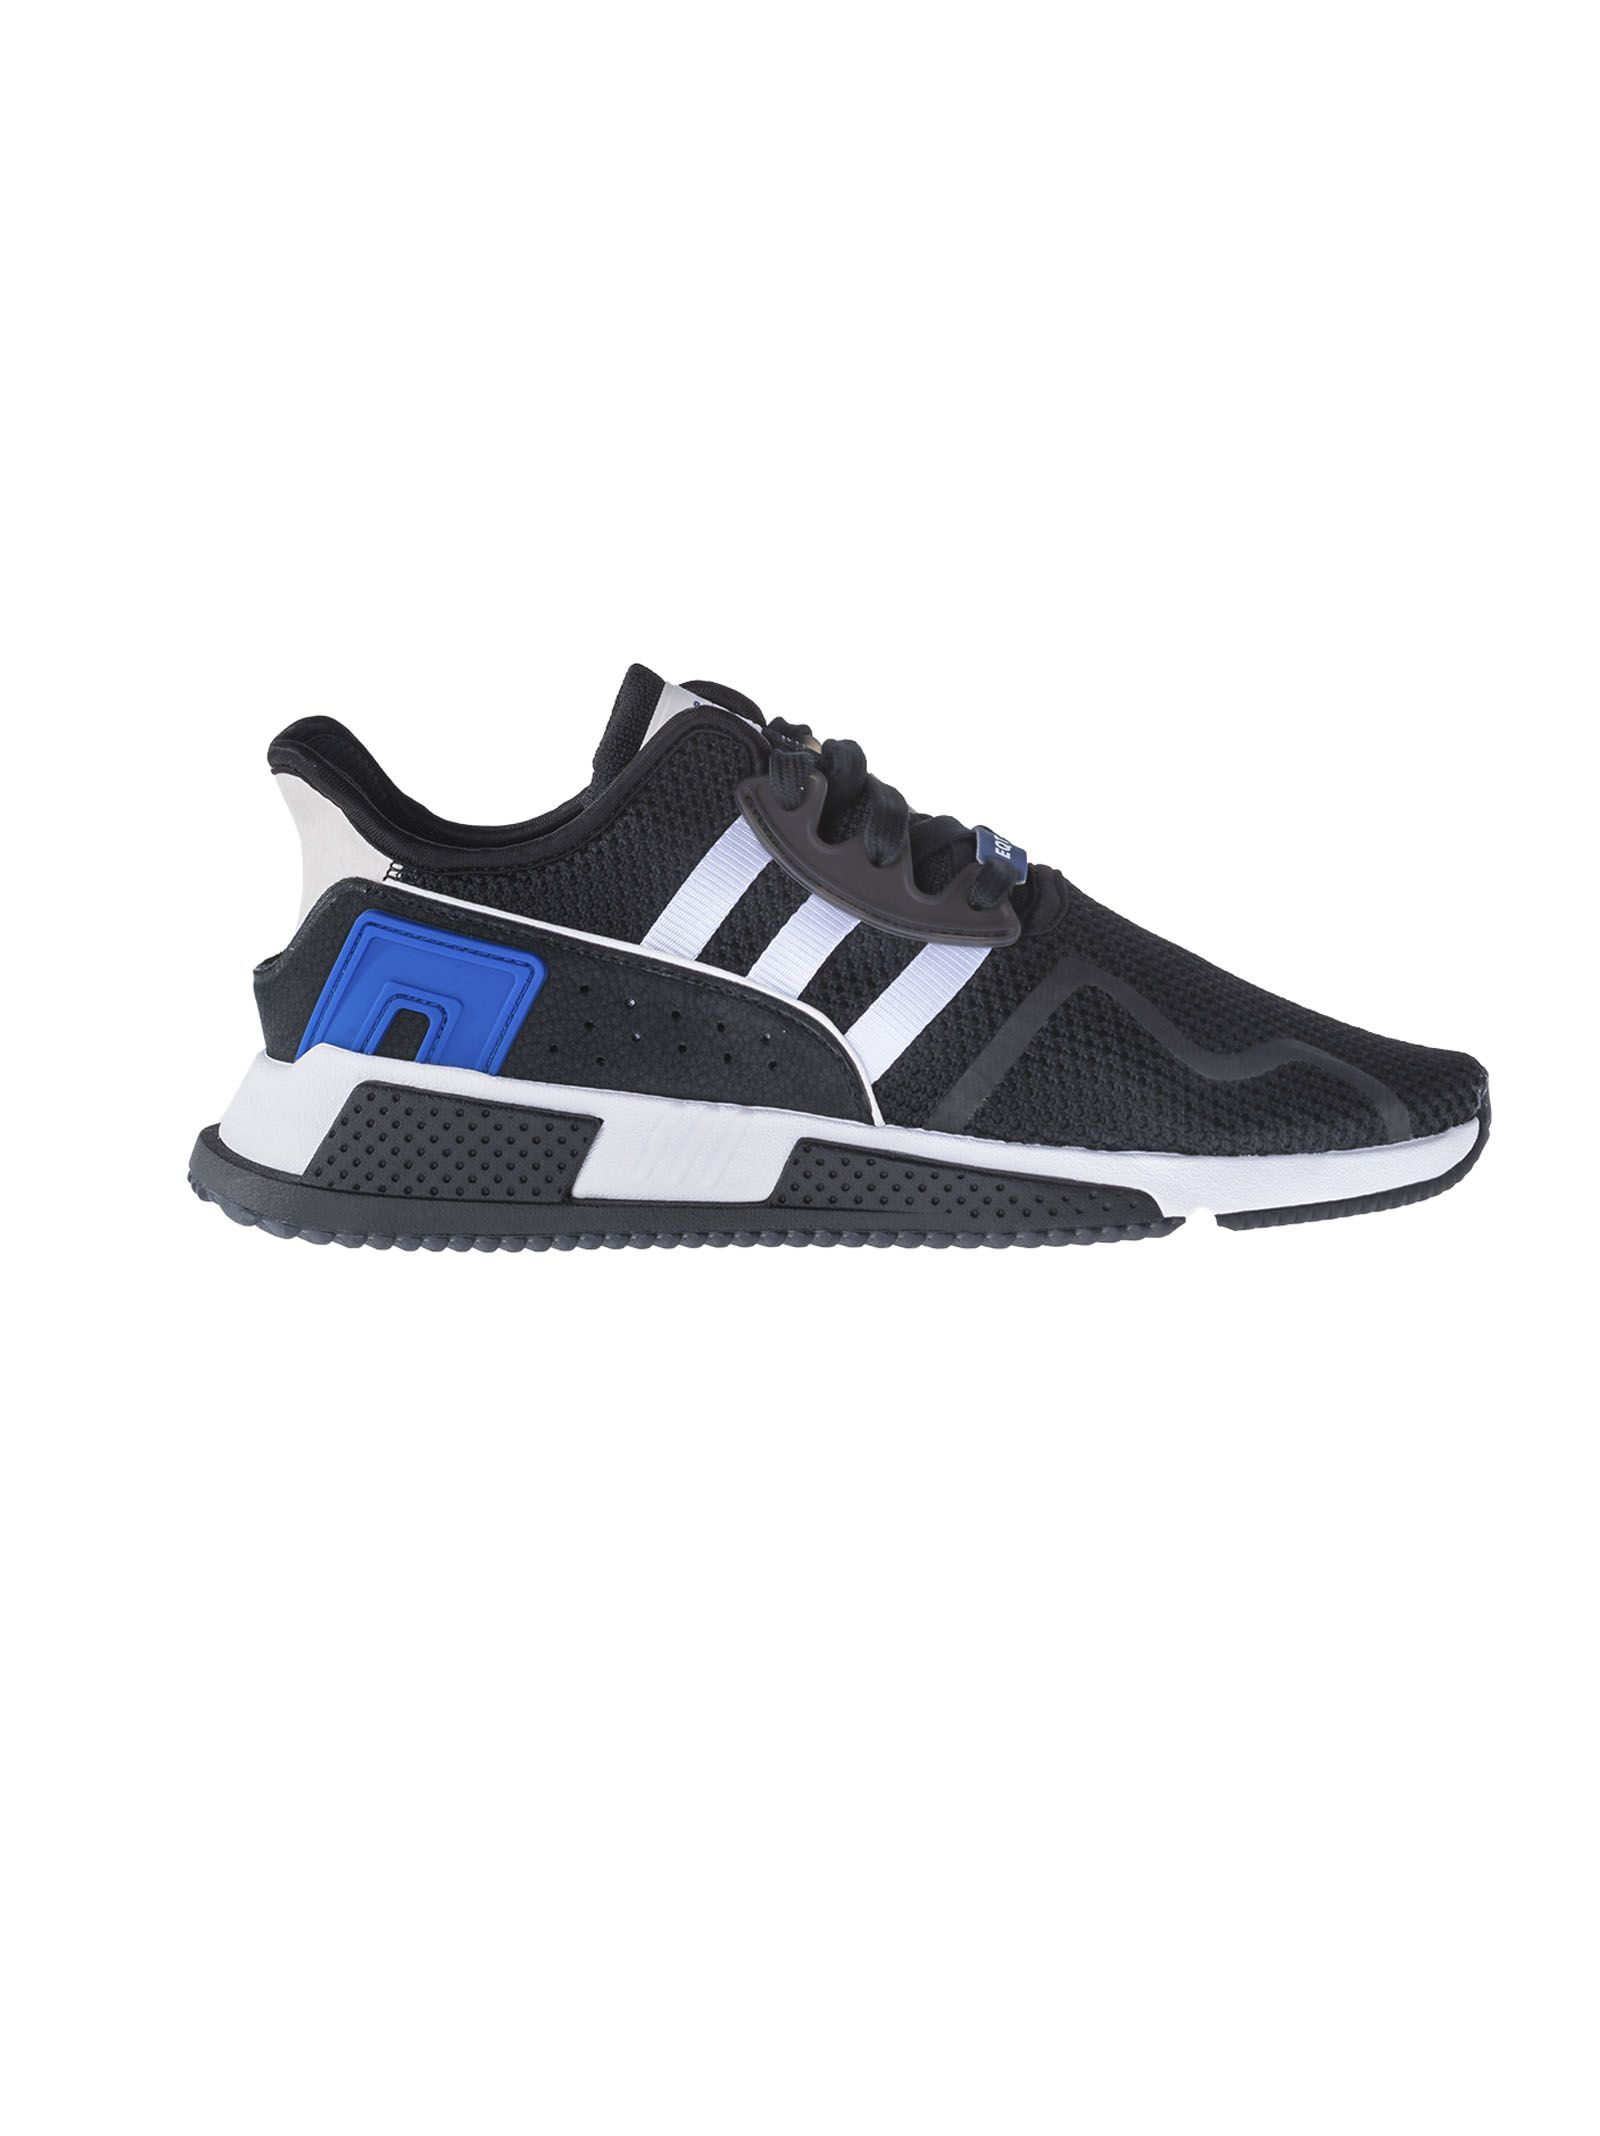 Adidas Originals Cushion Adv Sneakers